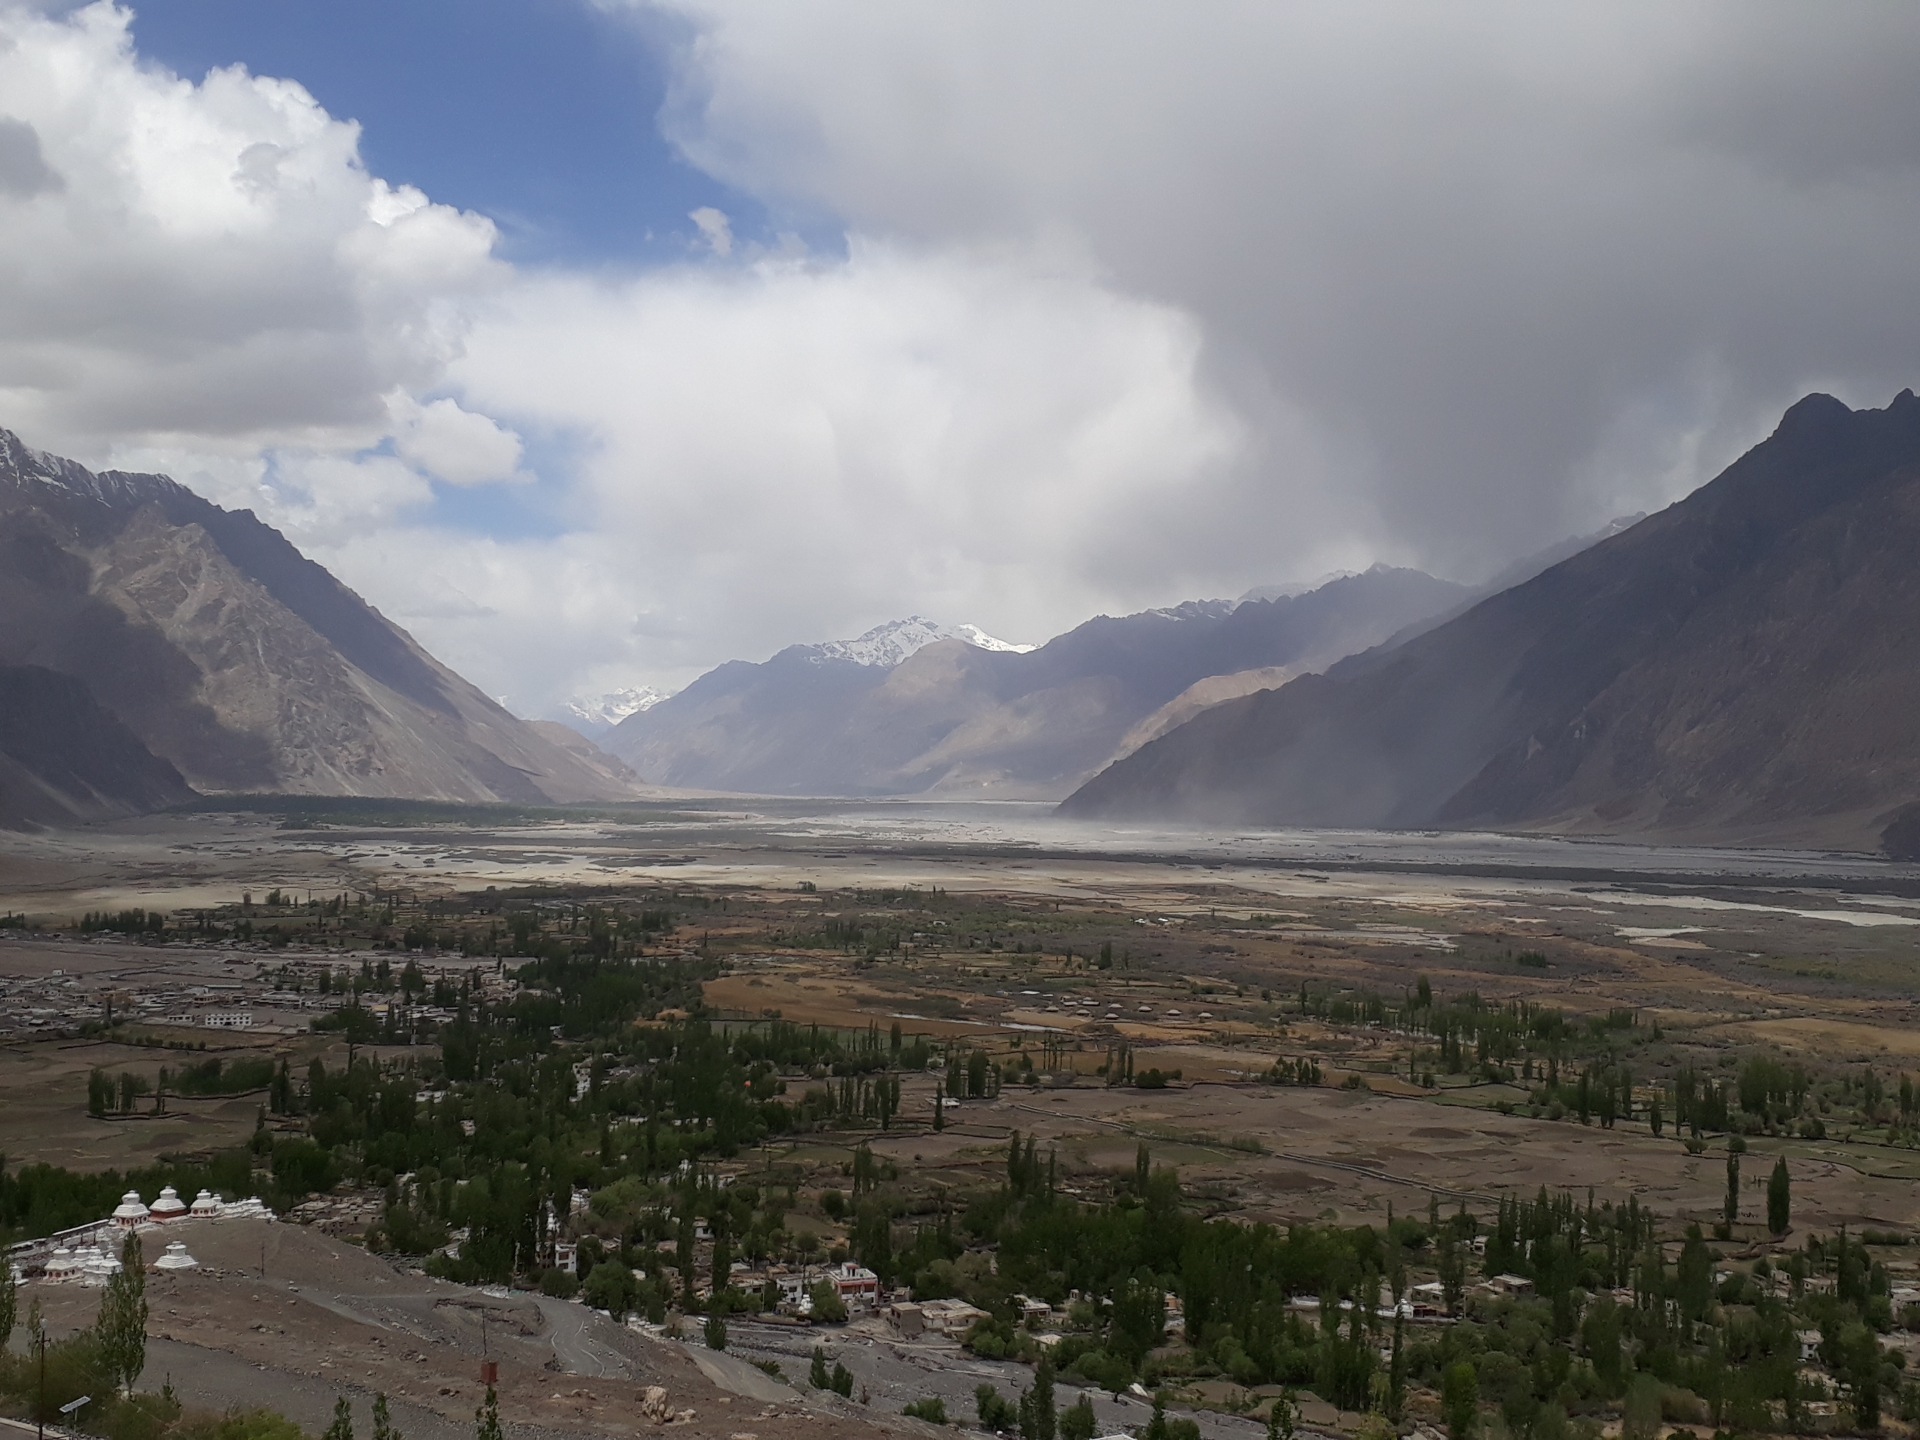 A view of Nubra Valley in Ladakh, where the author counted around 30 species of moths in a single night. Photo: Sarthak232001 – CC BY-SA 4.0